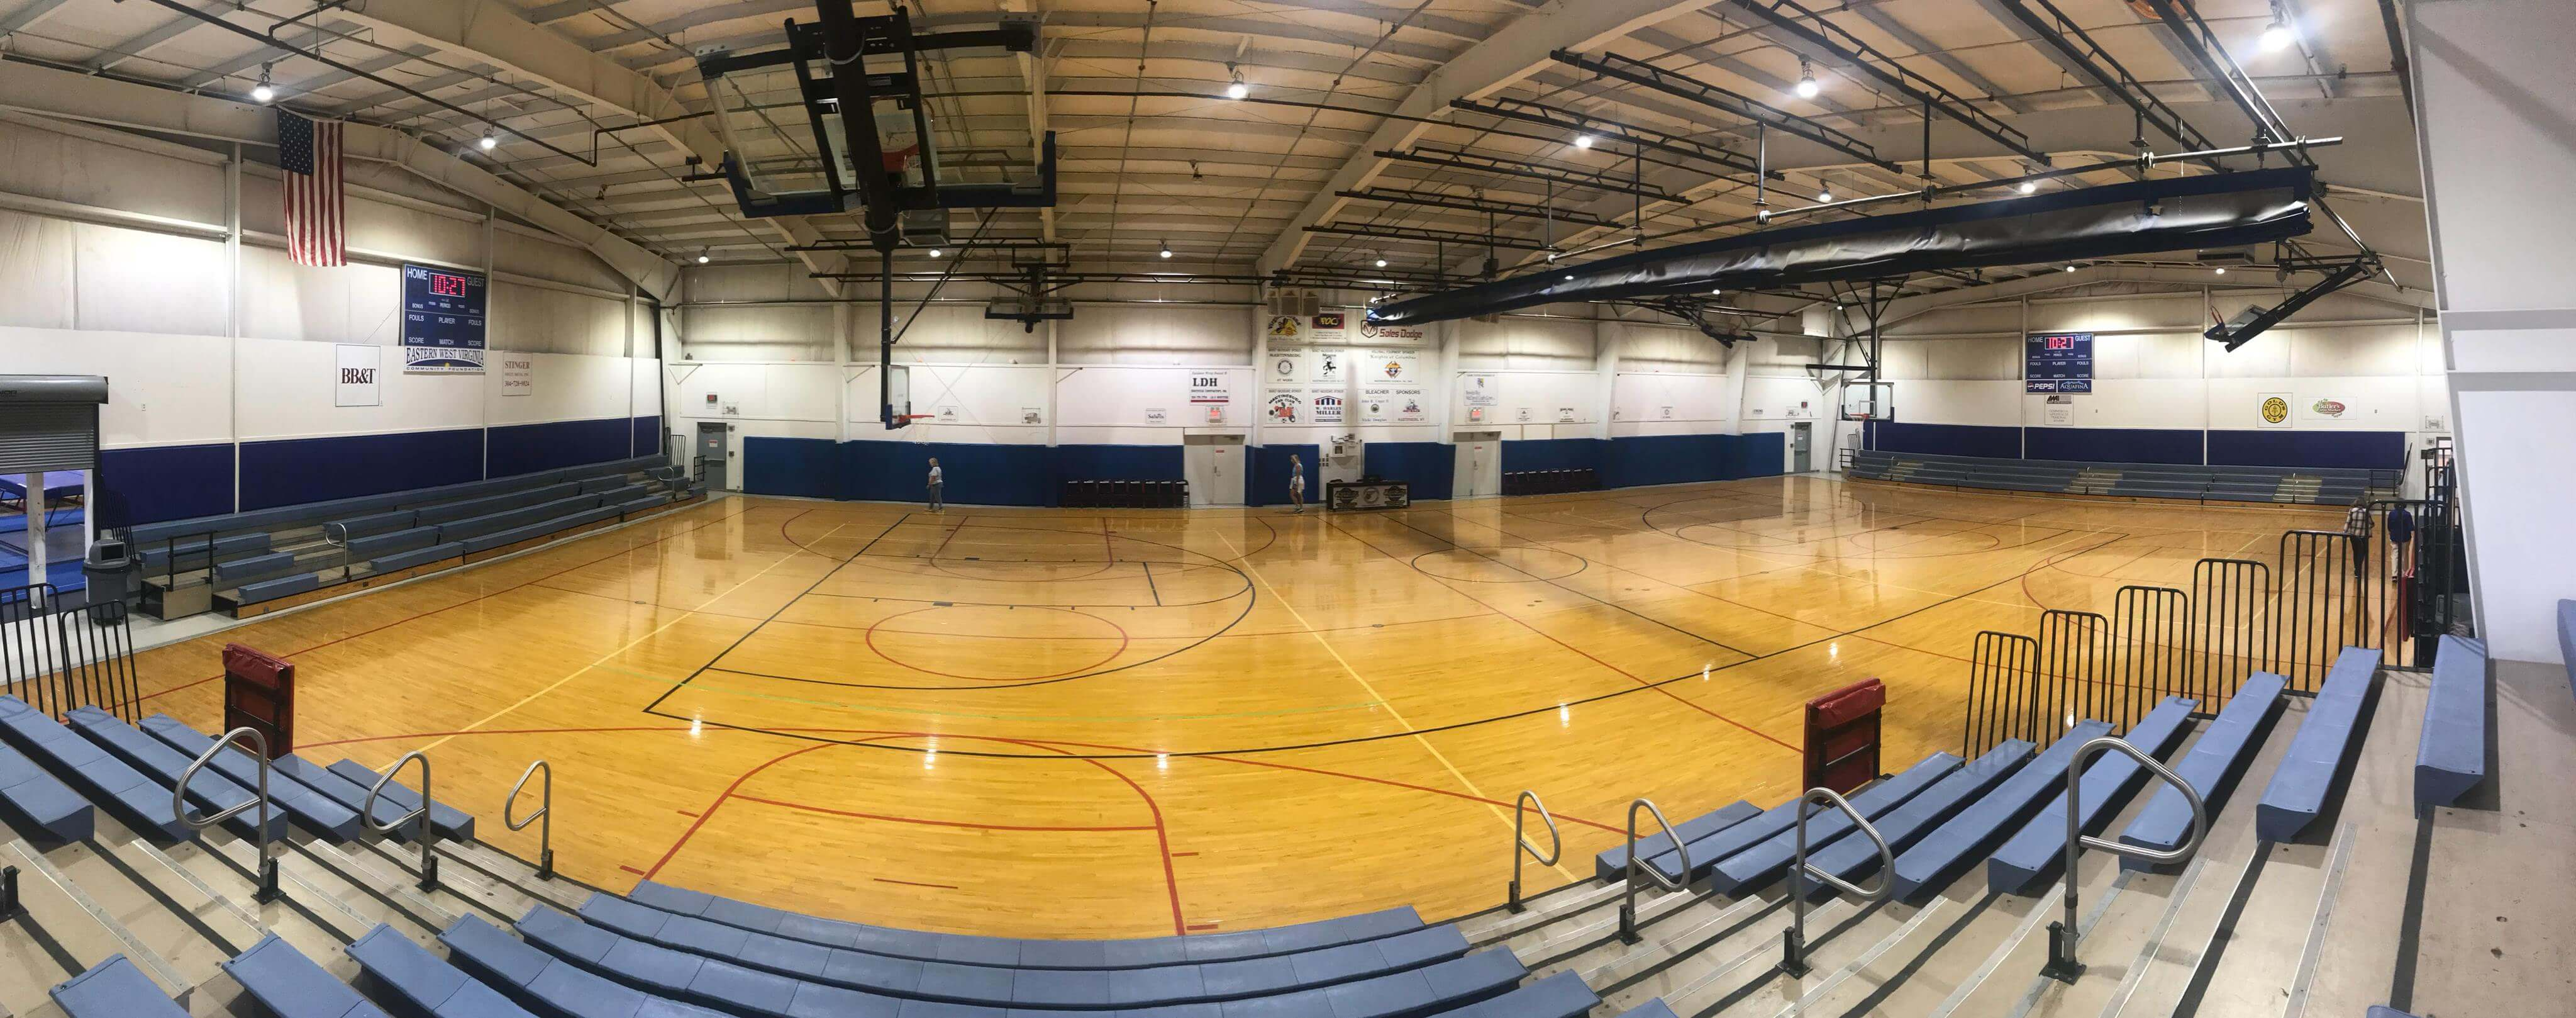 martinsburg-berkeley-berkeley-2000-Main Gym 5